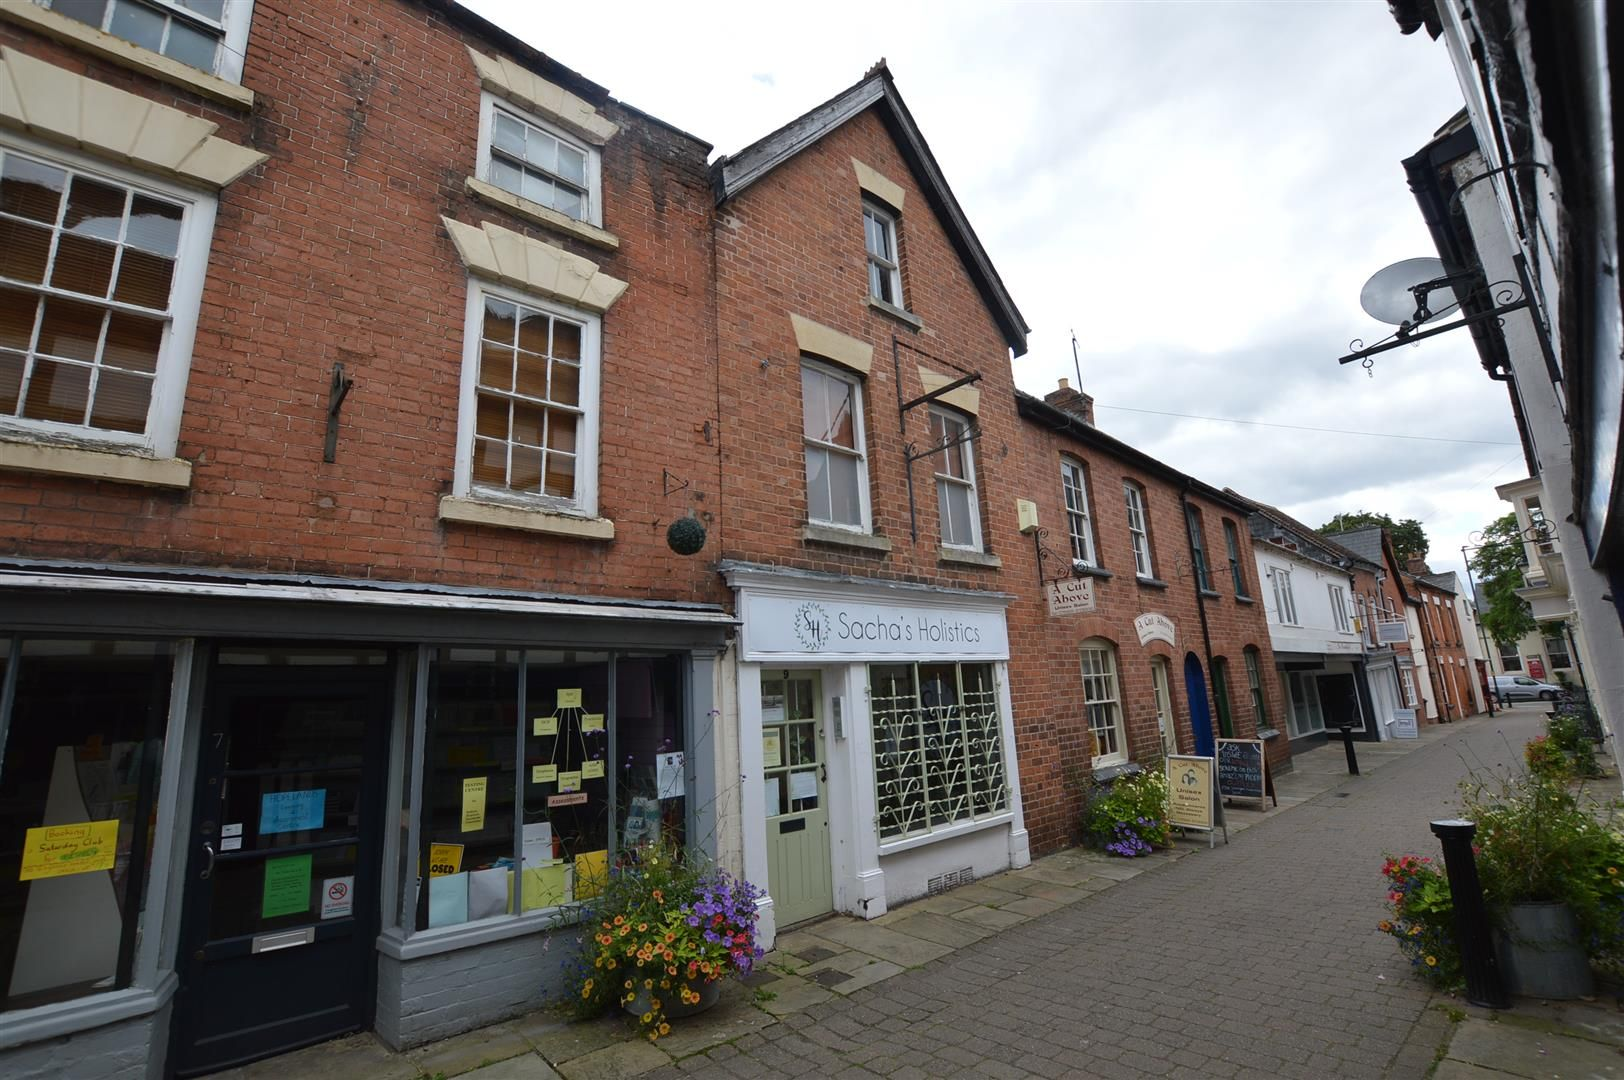 for sale in Leominster - Property Image 1